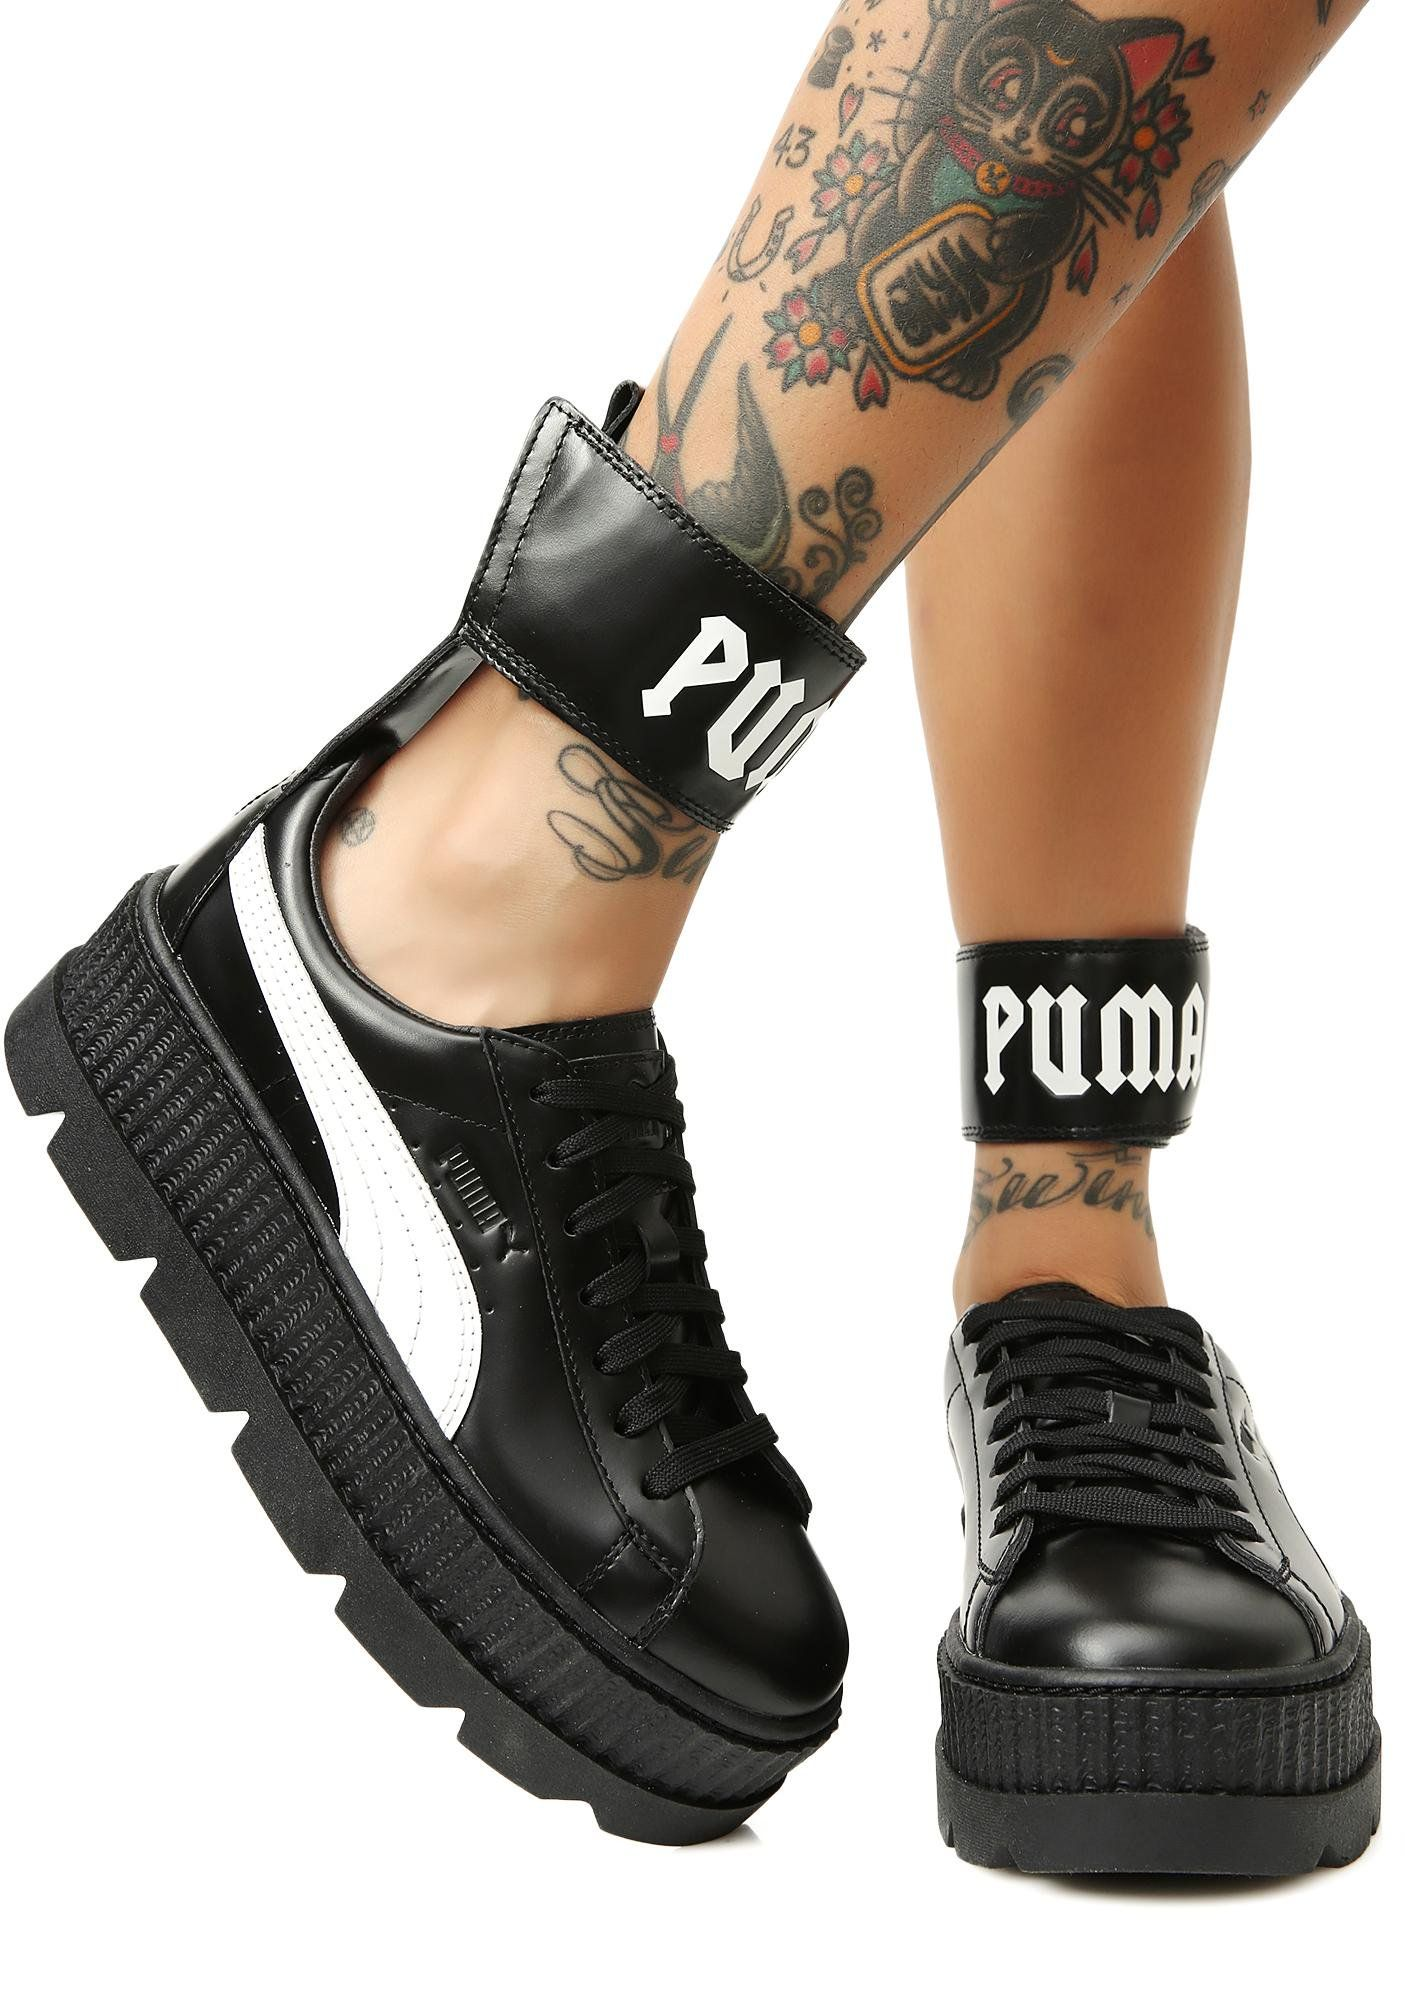 e34055700623 PUMA Midnight FENTY PUMA by Rihanna Ankle Strap Sneakers will keep you  lookin dope af ... Womens shoes ...